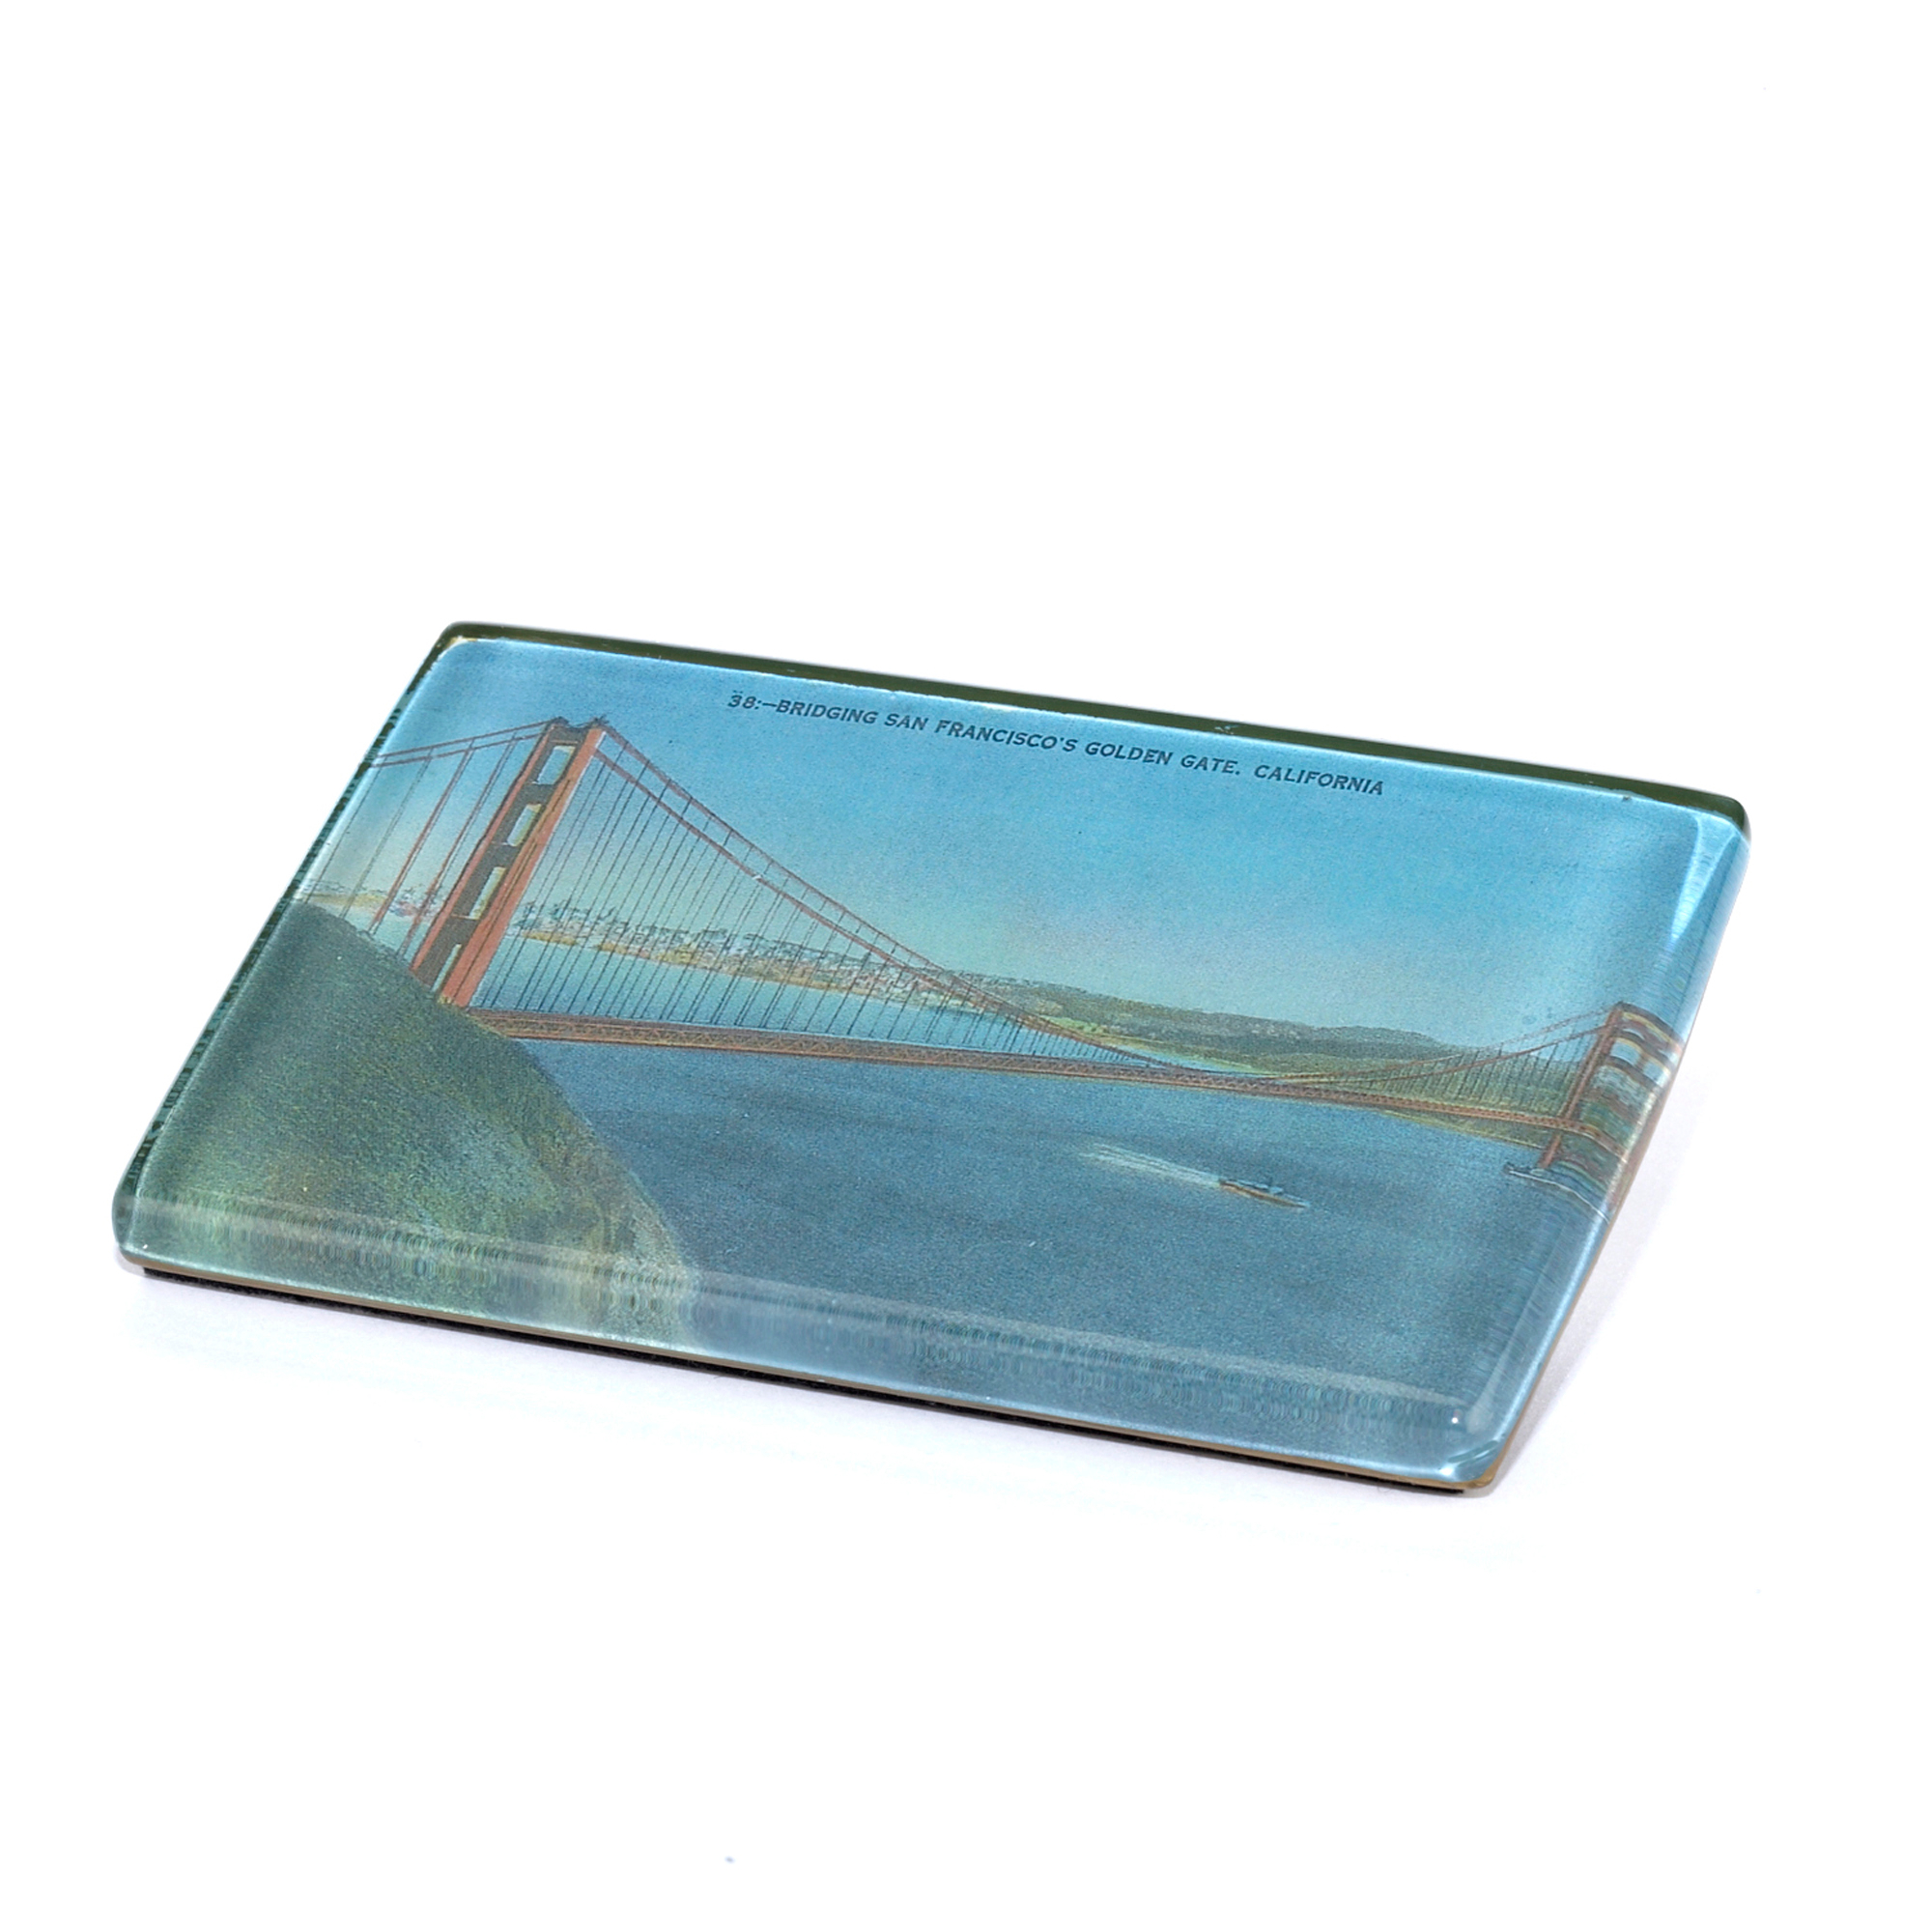 Golden Gate Paperweight